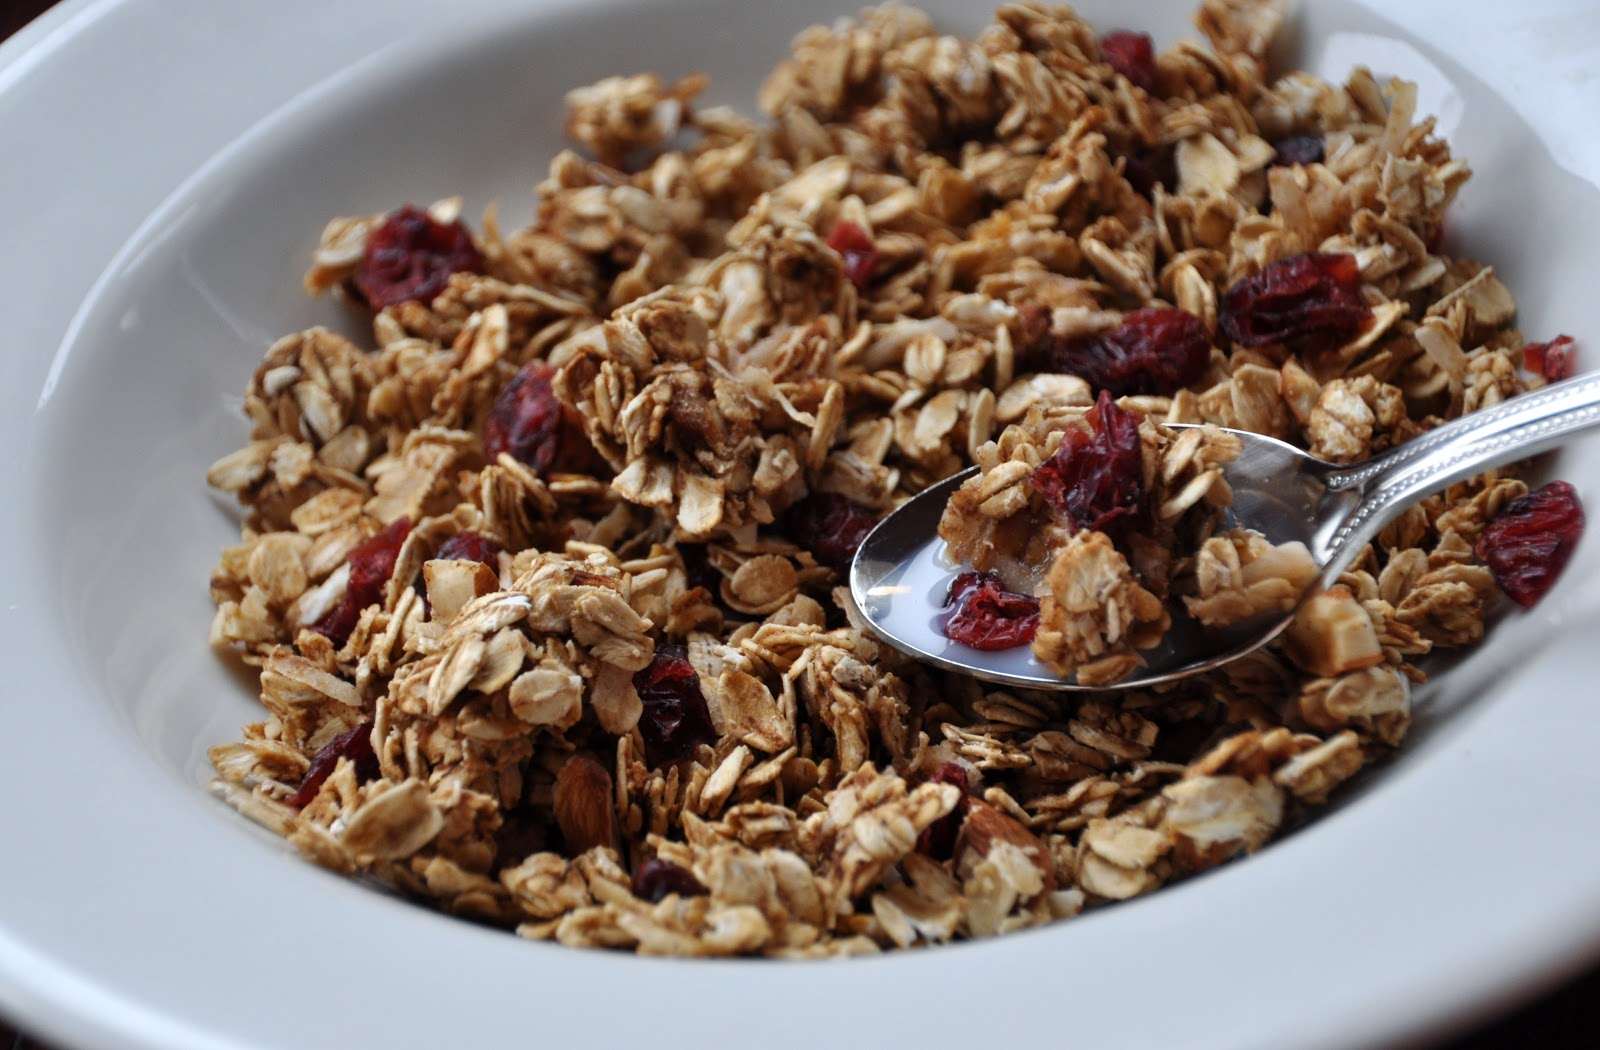 LA GRAHAM: APPLE CINNAMON GRANOLA- CLEAN EATING